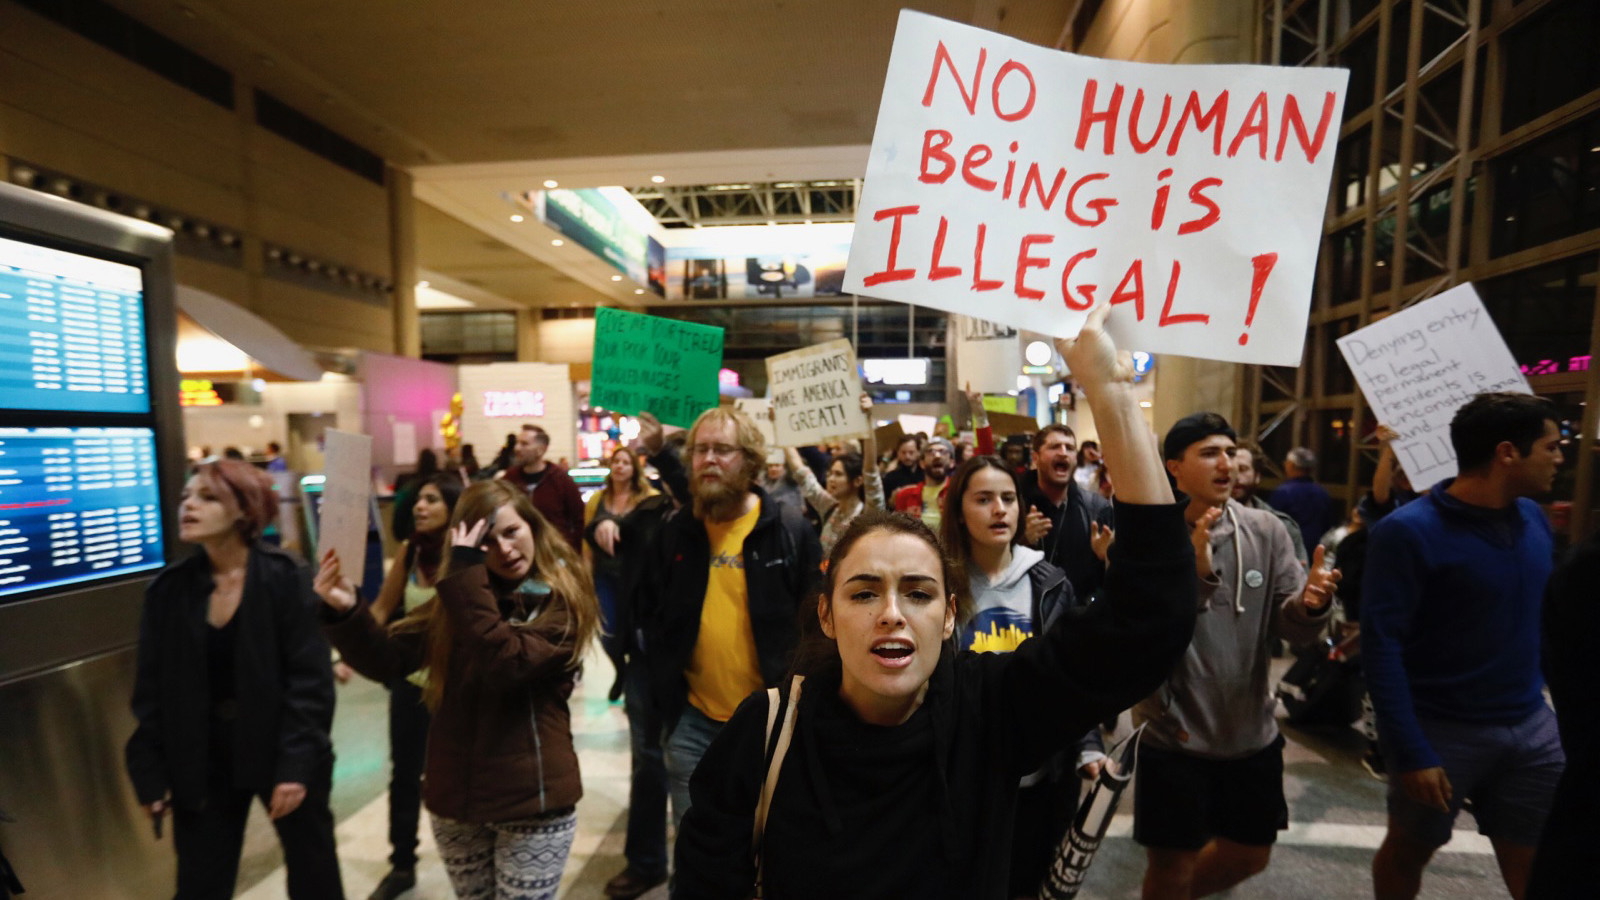 A protest at Los Angeles International Airport over Trump's immigration order. (Patrick T. Fallon/For the Times)